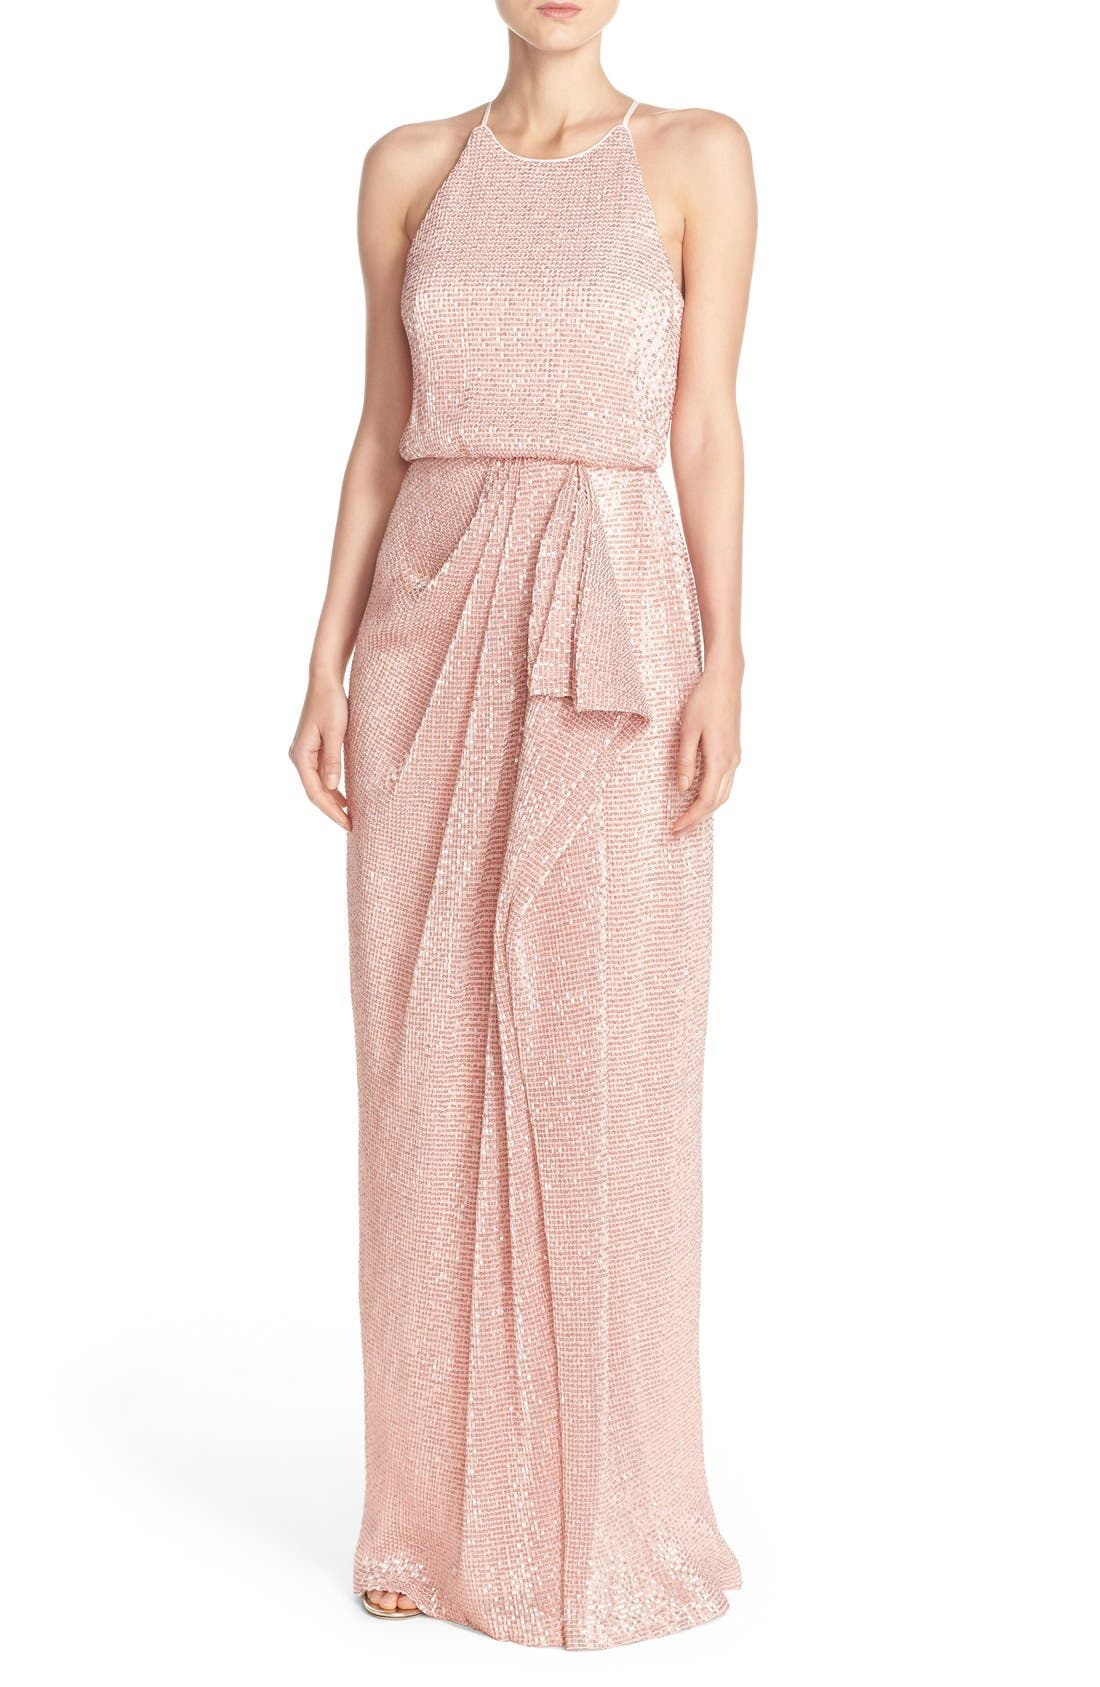 Alternate Image 1 Selected - Badgley Mischka Sequin Mesh Blouson Gown